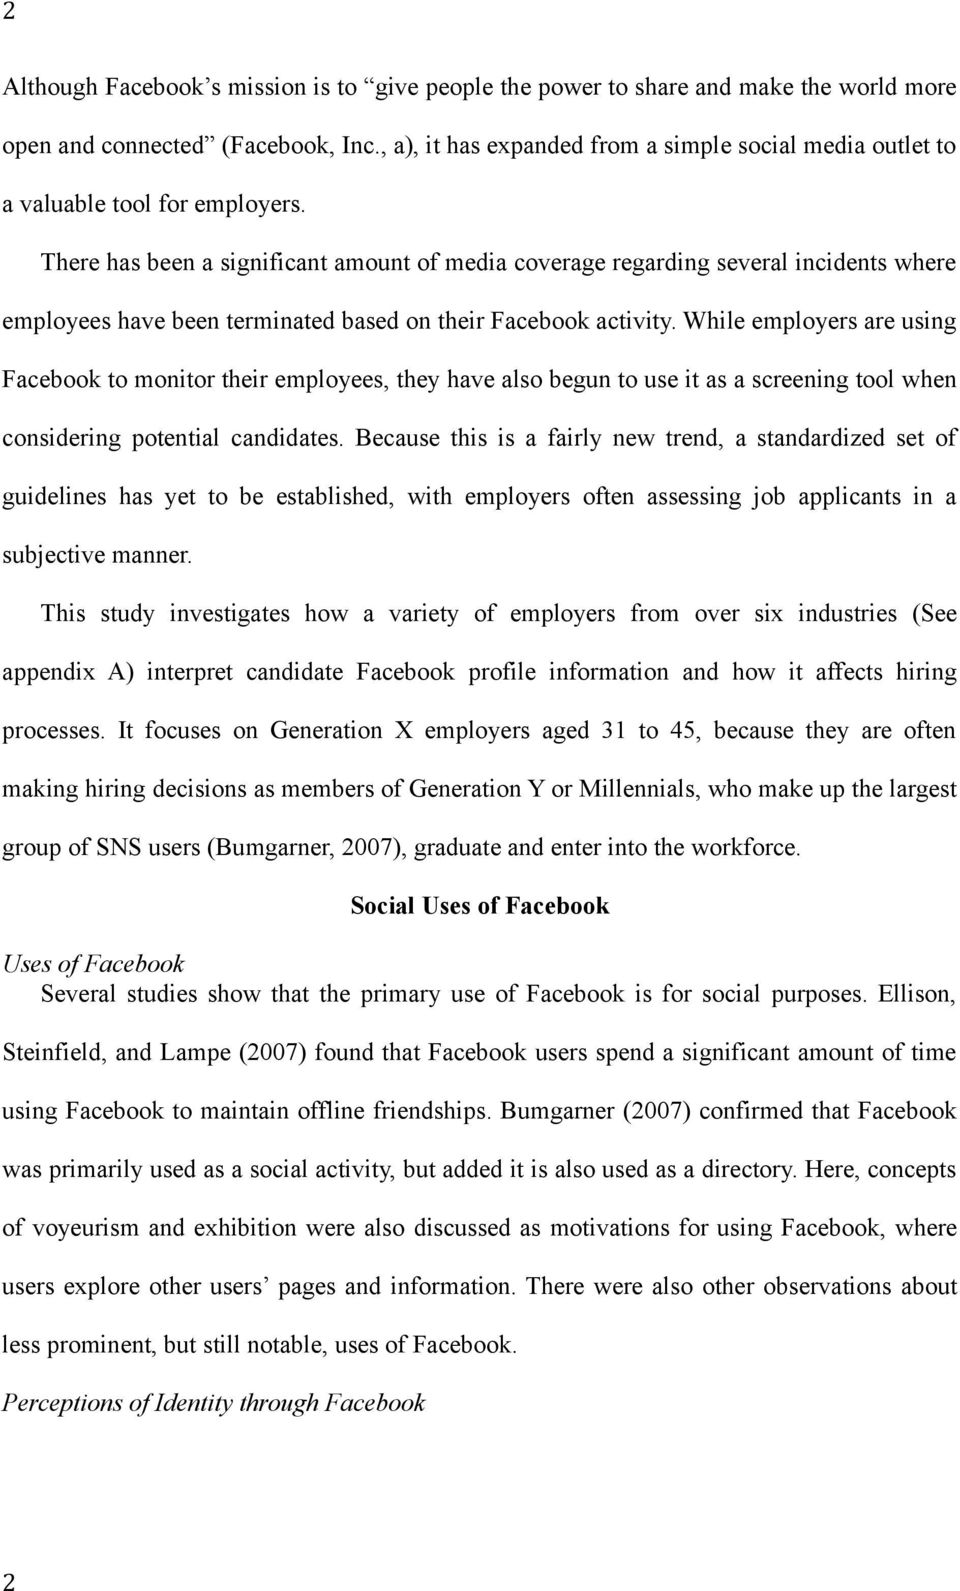 There has been a significant amount of media coverage regarding several incidents where employees have been terminated based on their Facebook activity.